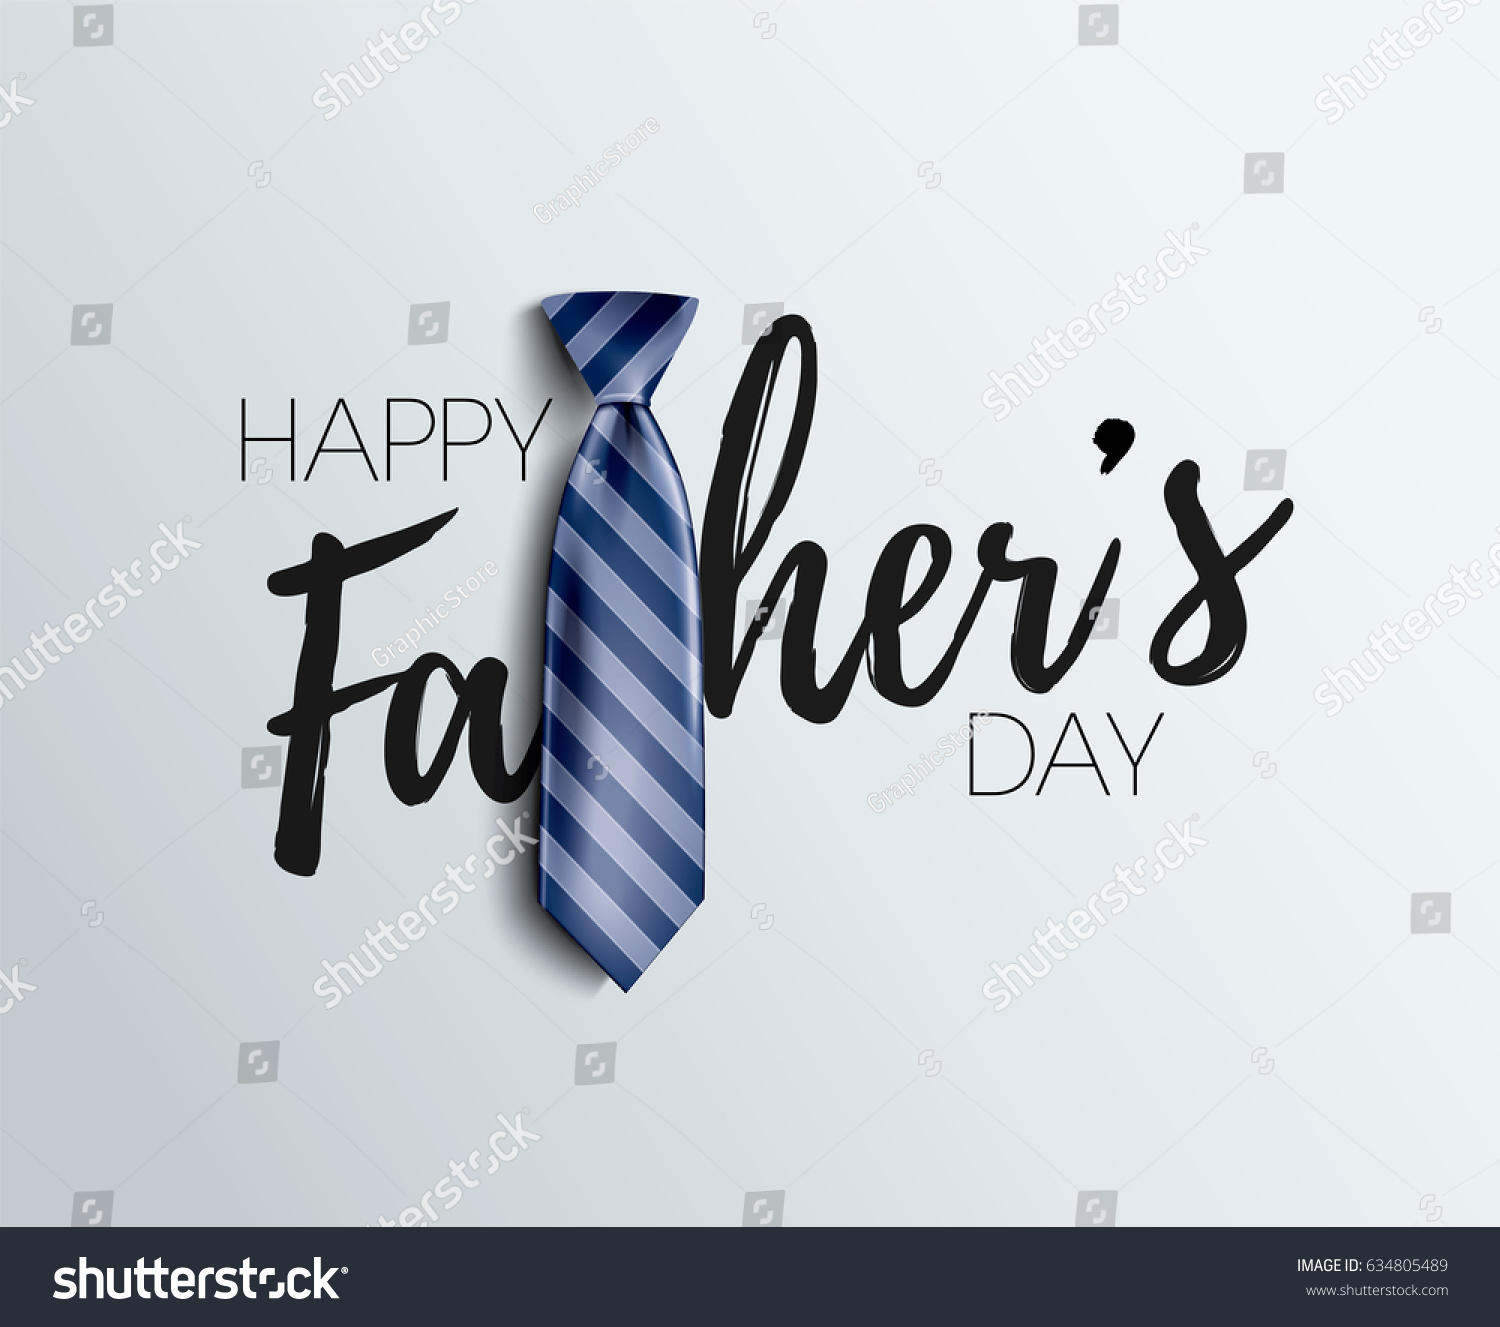 Happy Father's Day Calligraphy greeting card. Vector illustration. #634805489